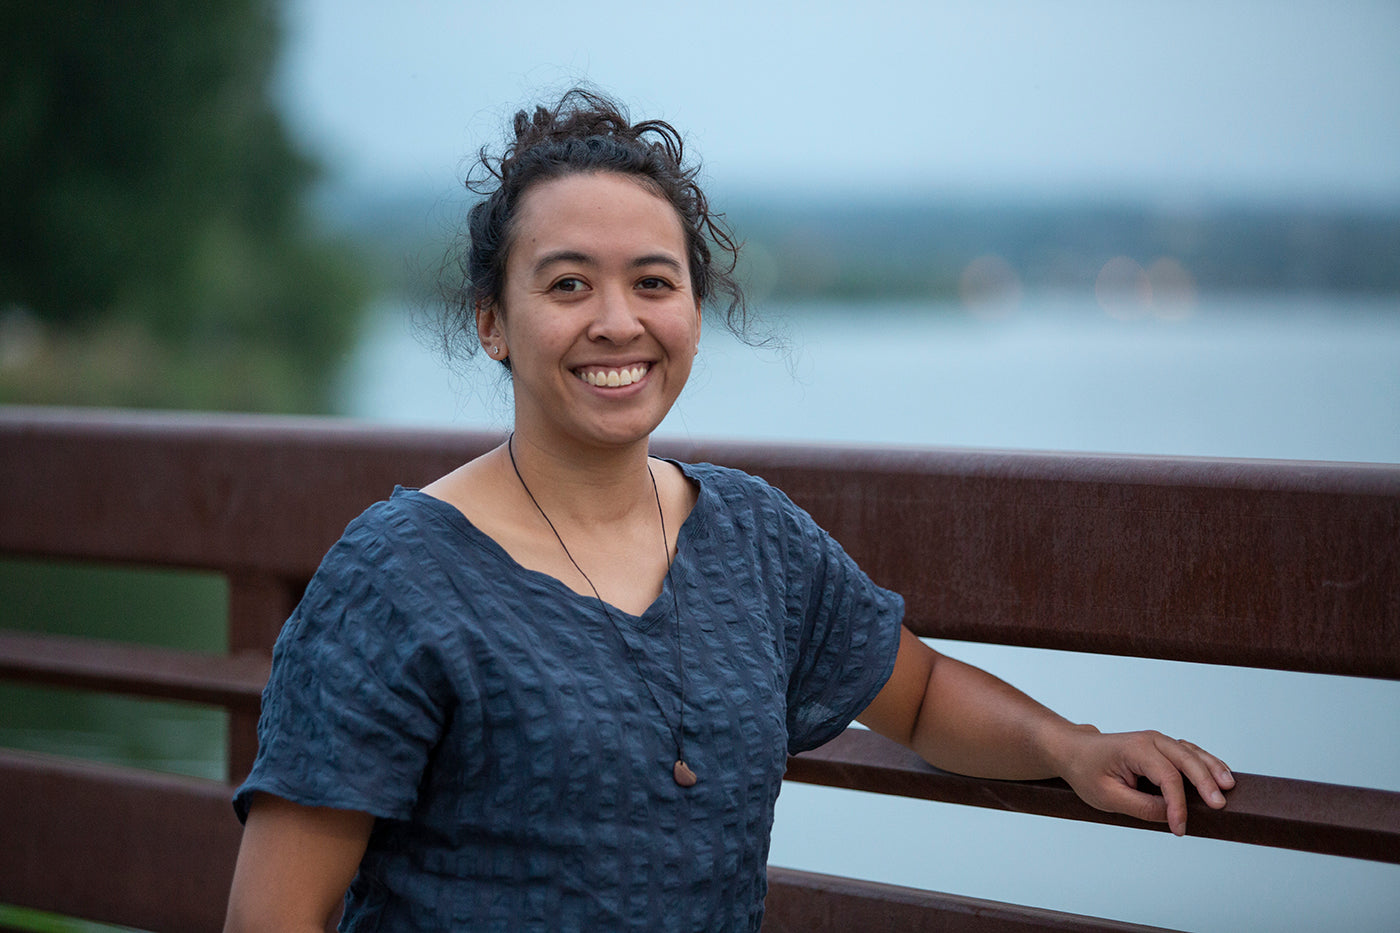 This is an image of a woman wearing a blue linen shirt standing outside on a bridge